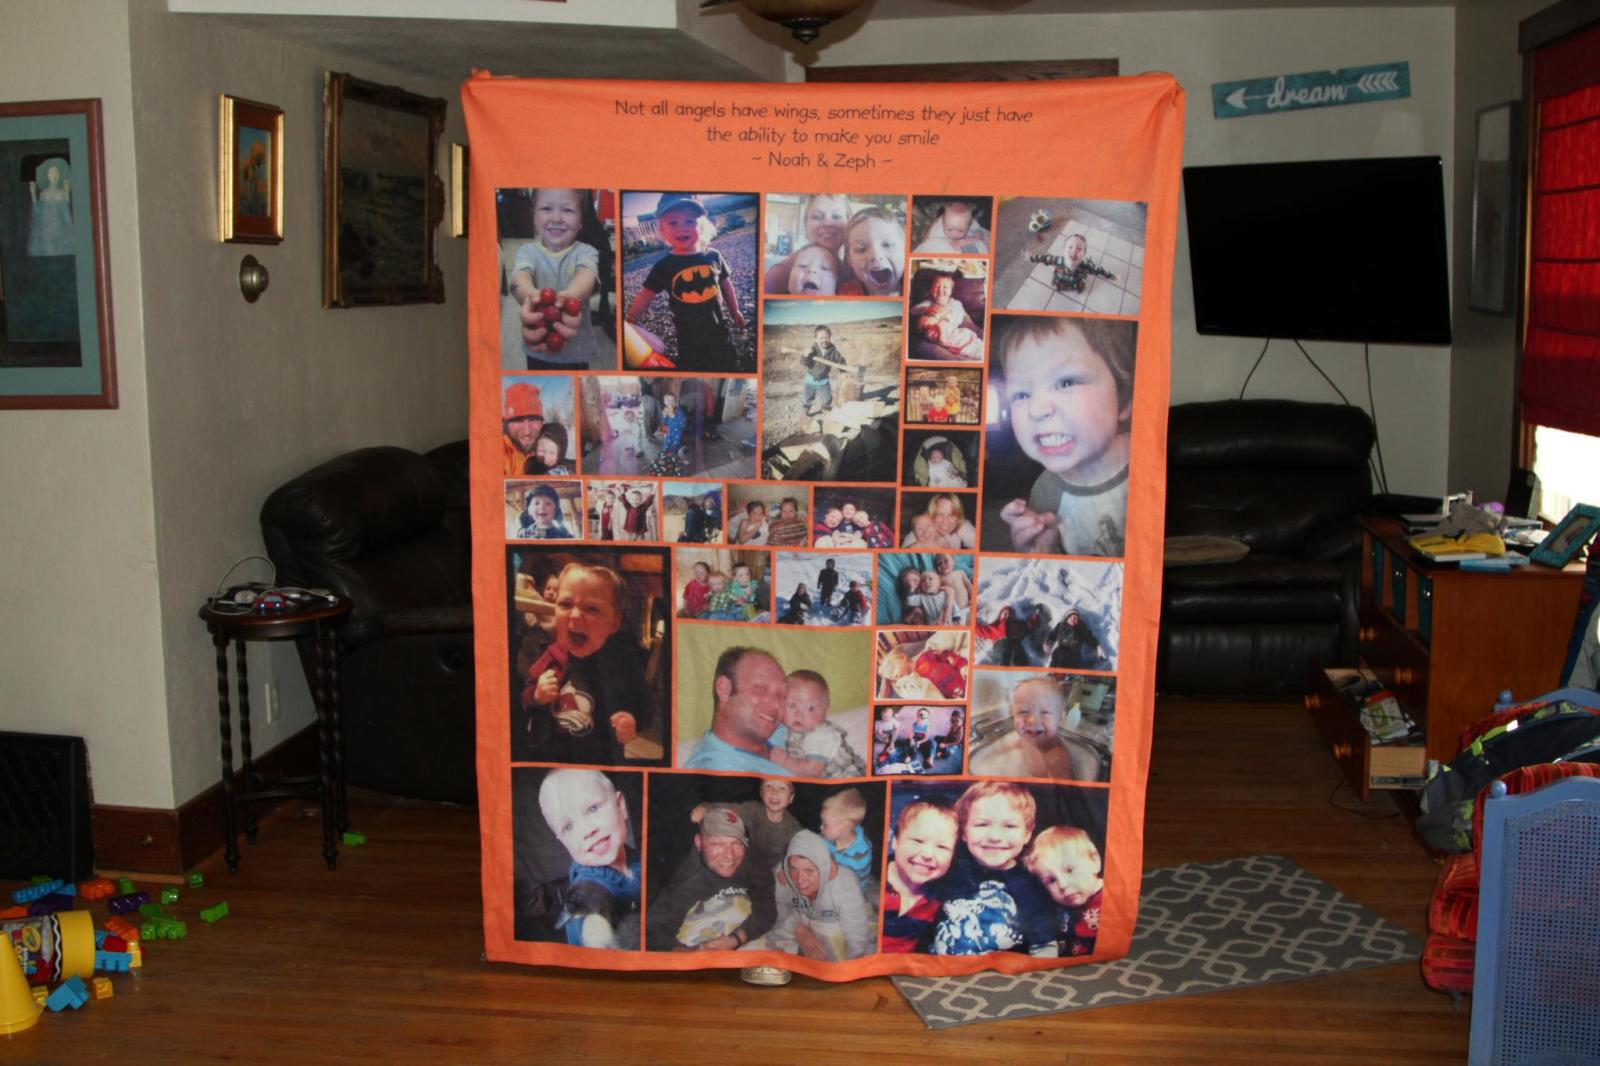 Blanket featuring the van Dijk family